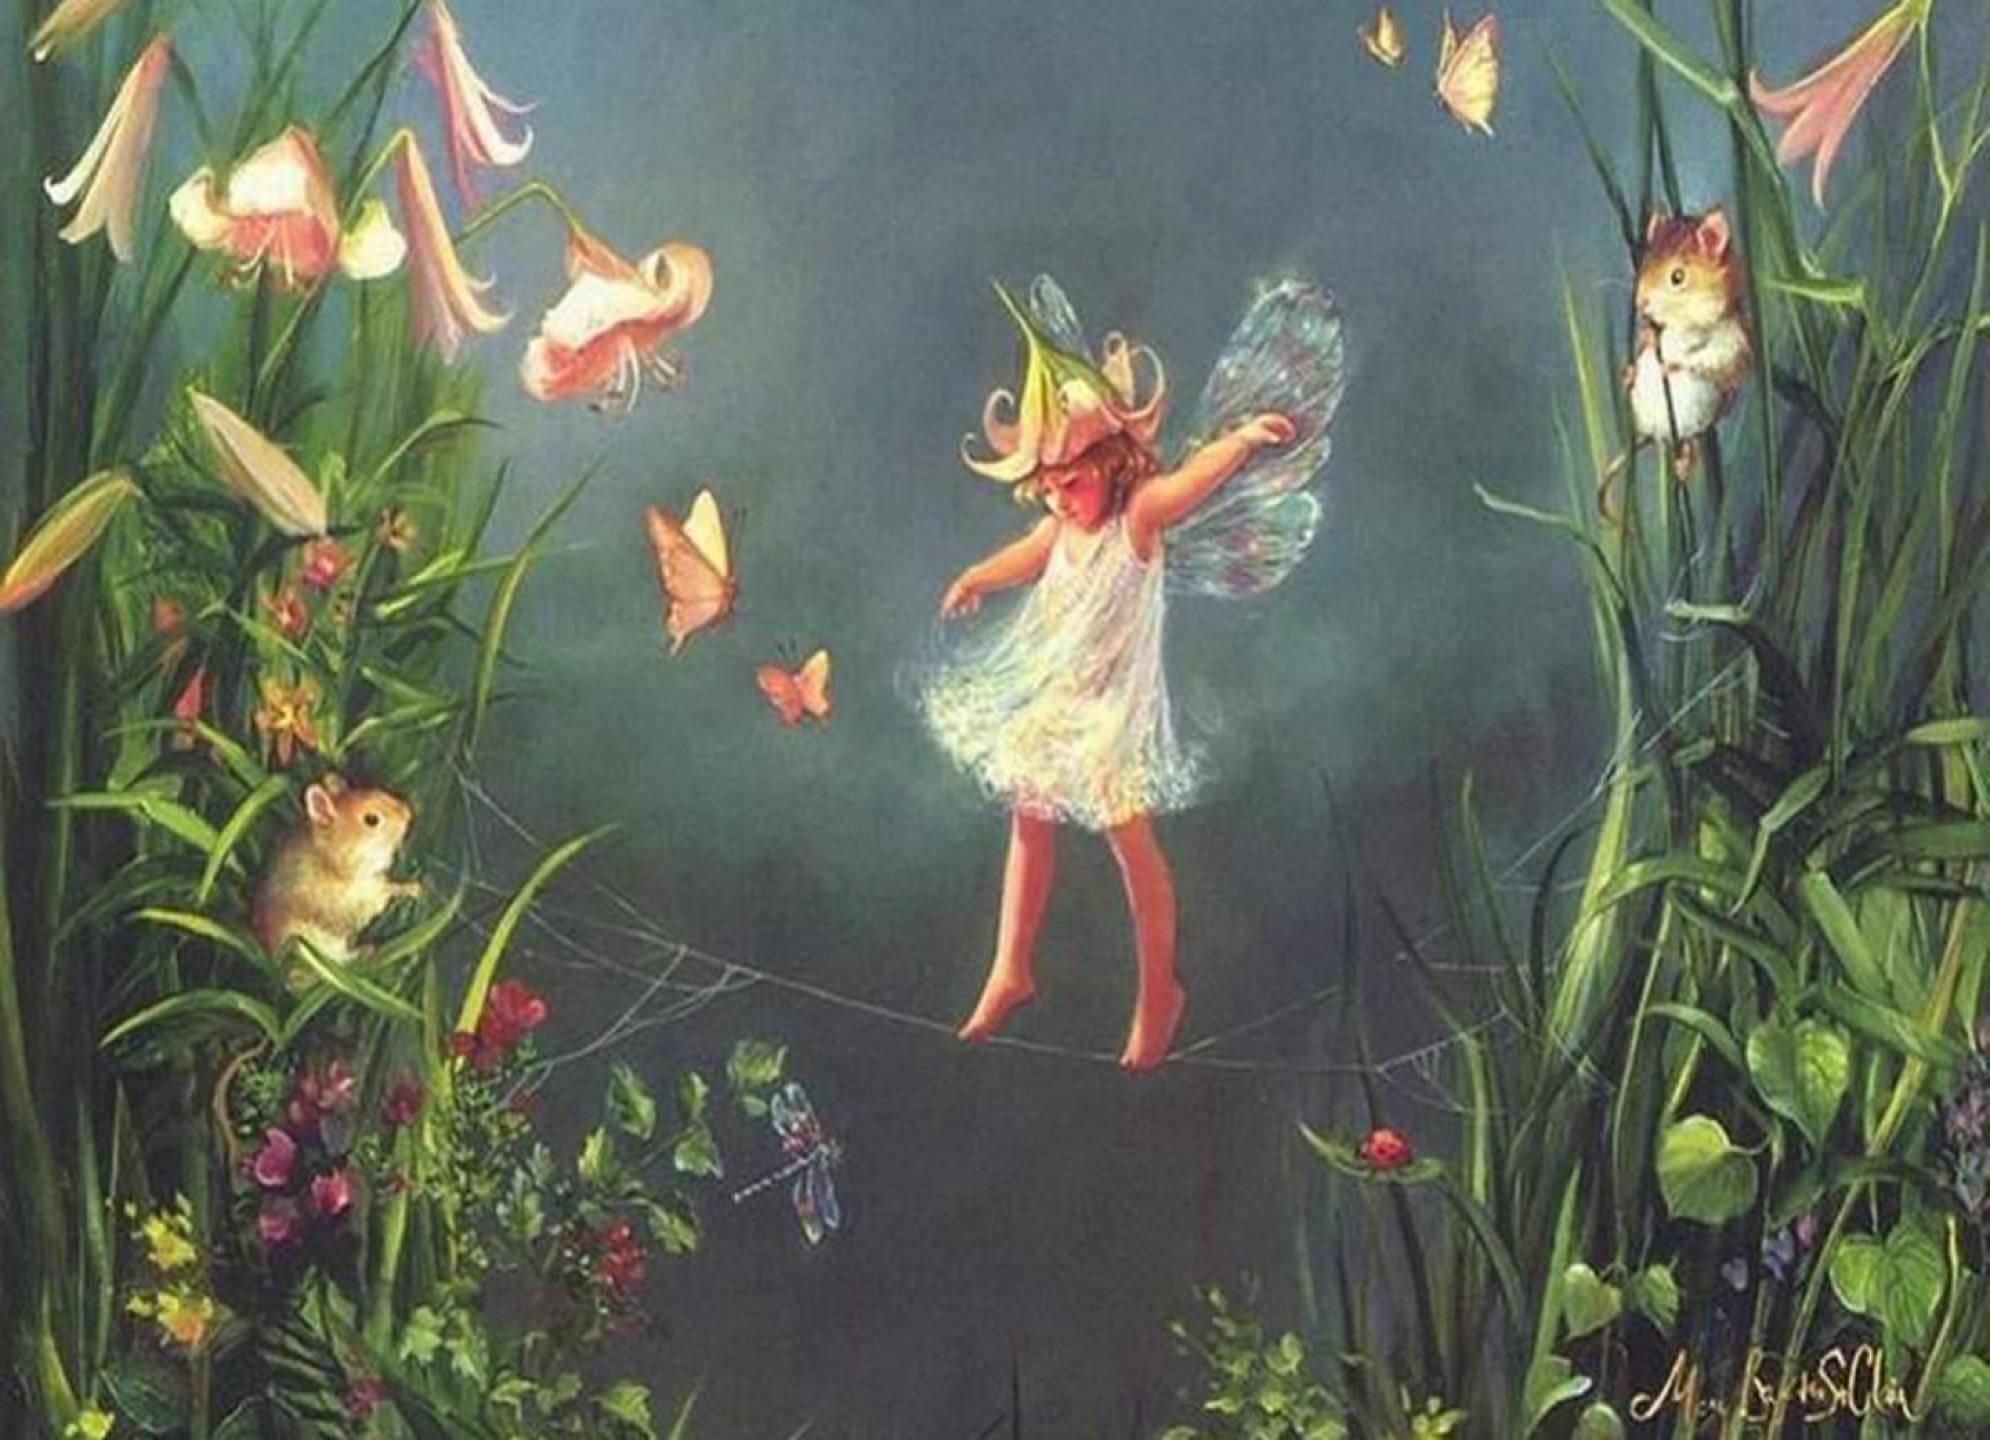 Beautiful fairy wallpaper 19201080 beautiful fairies wallpapers beautiful fairy wallpaper 19201080 beautiful fairies wallpapers 56 wallpapers adorable wallpapers voltagebd Image collections